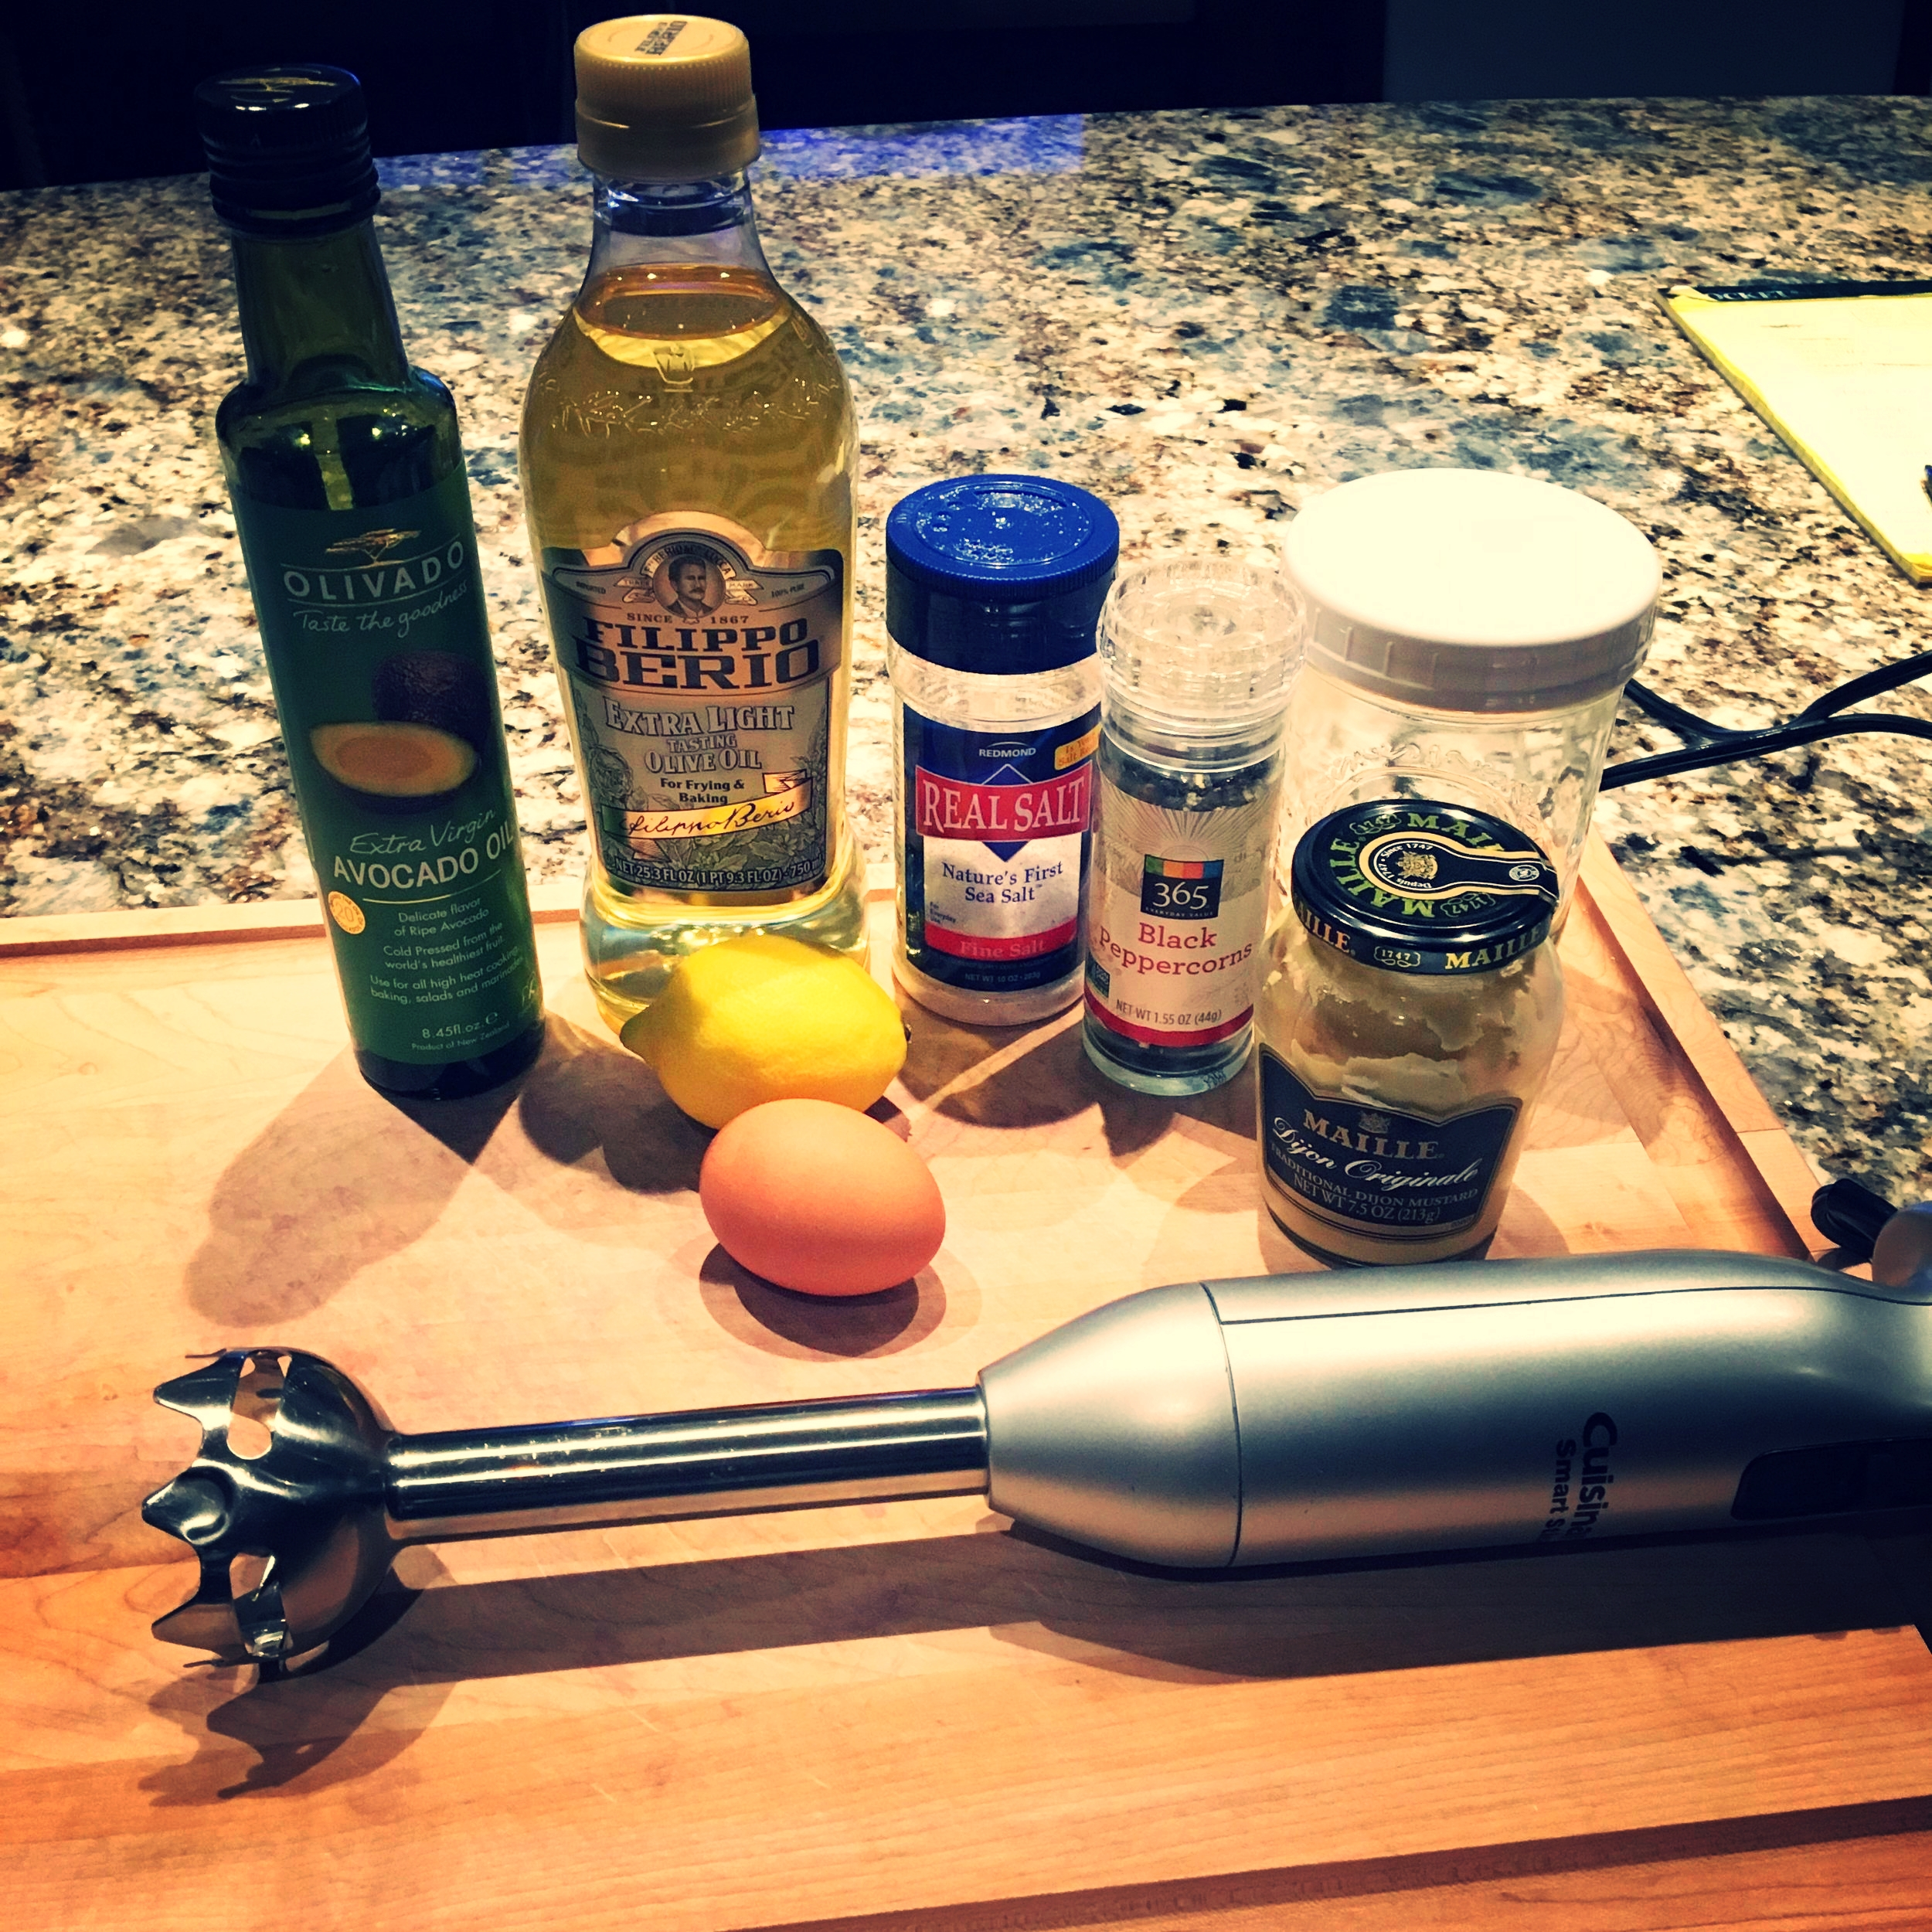 Ingredients and equipment...there's not a lot to this